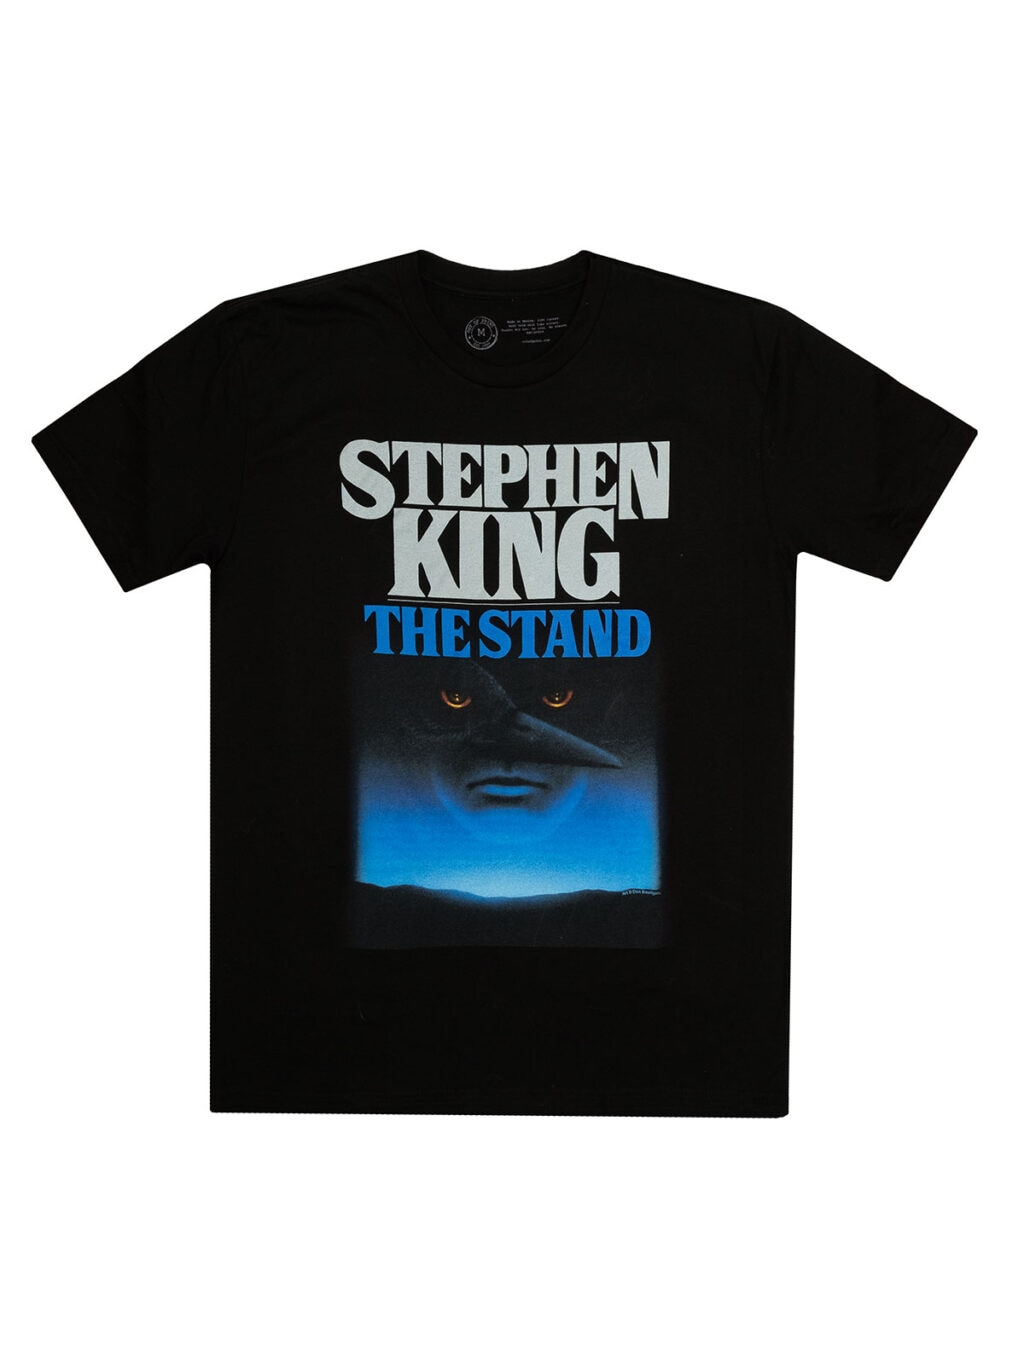 Unisex Stephen King The Stand 1024x1365 - Out of Print's STEPHEN KING Collection Sports Classic Cover Art!